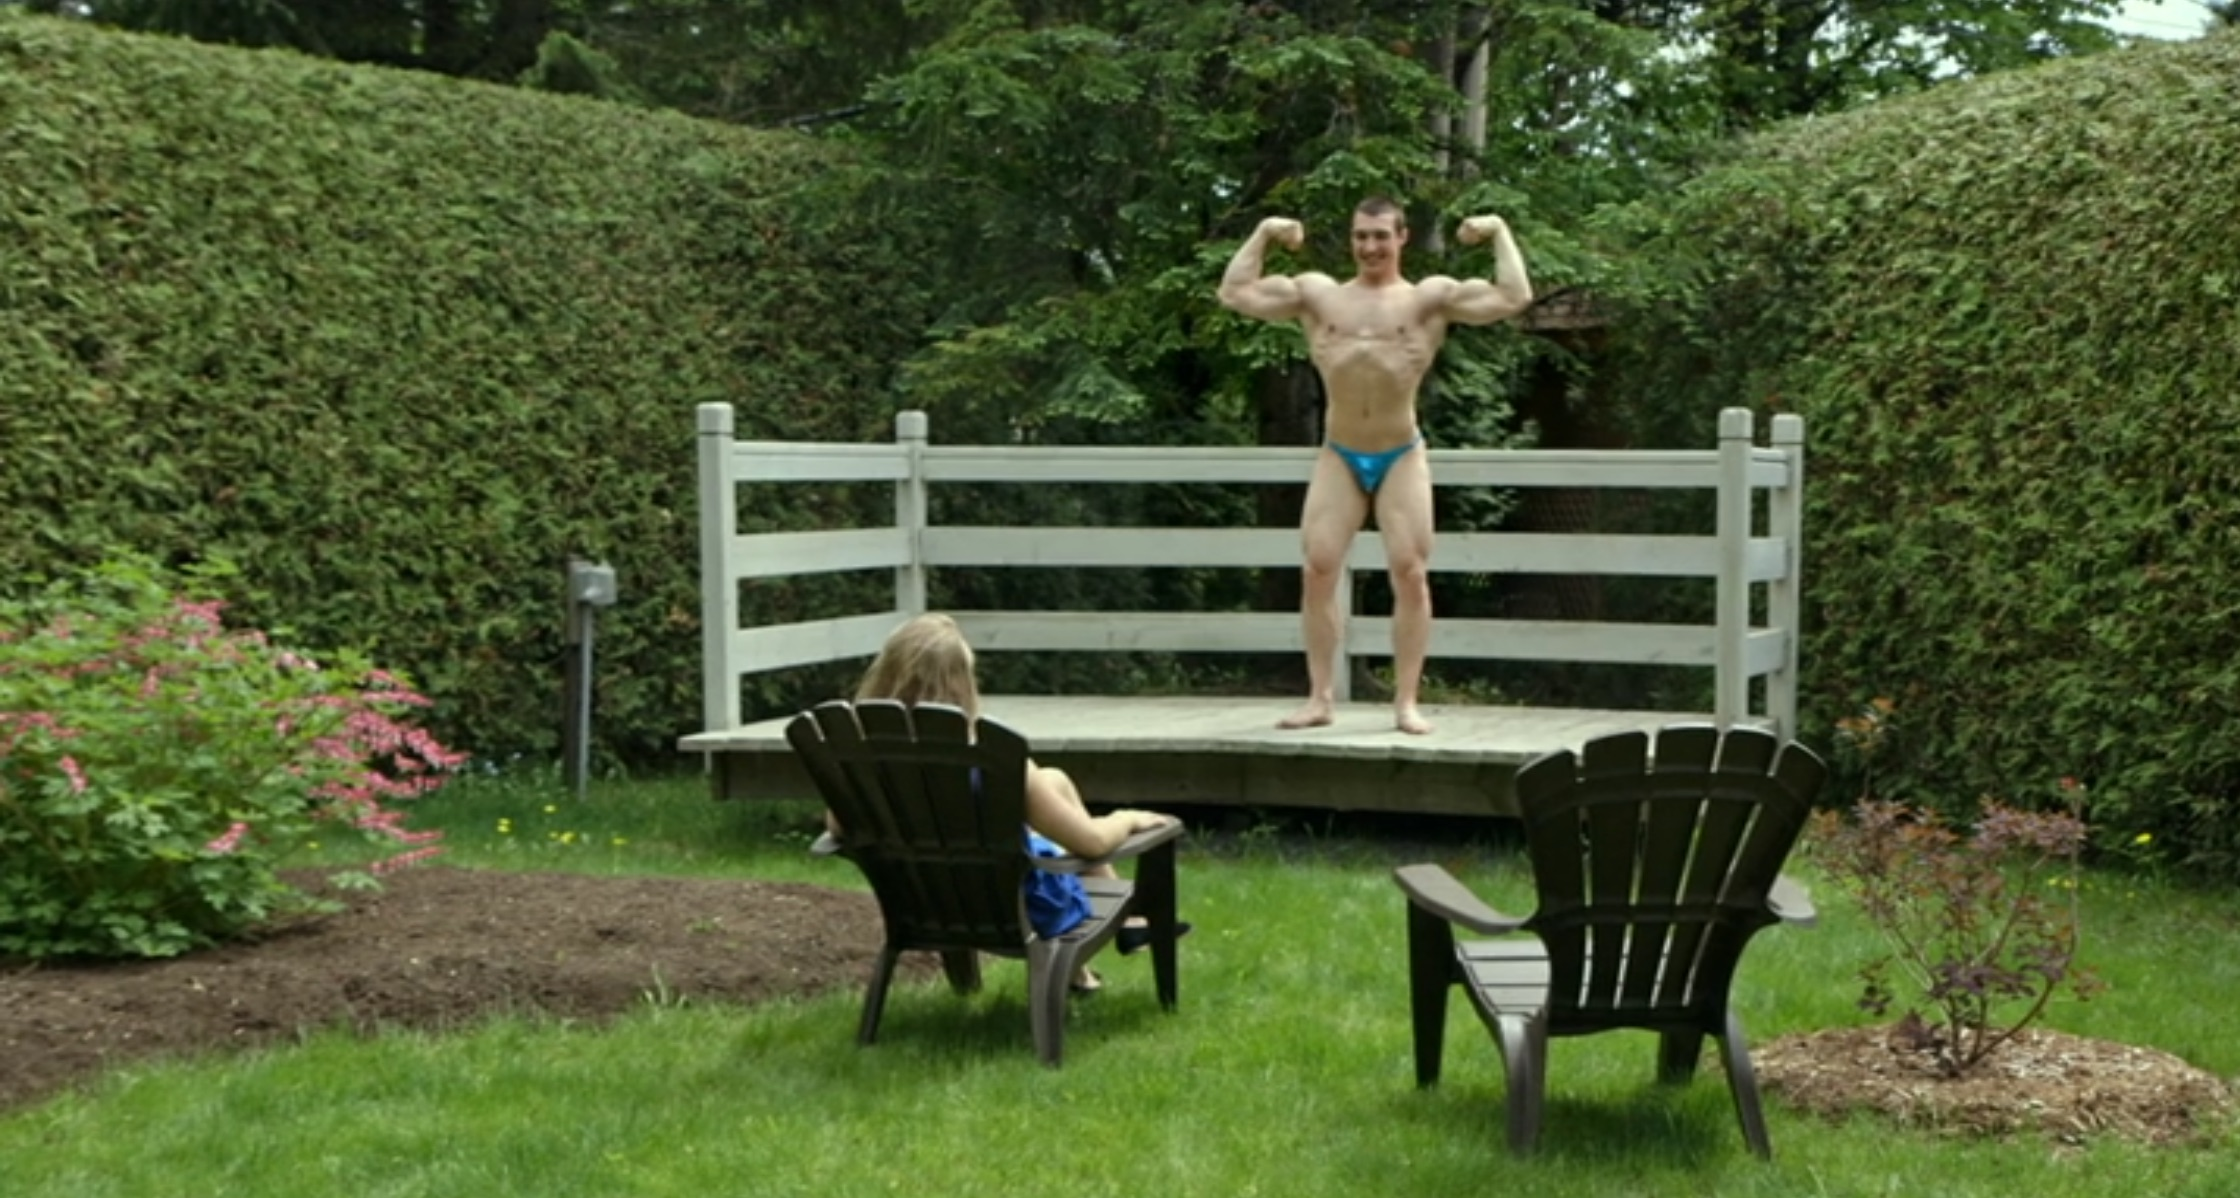 Man flexing on platform, still from Ta peau si lisse, directed by Denis Côté